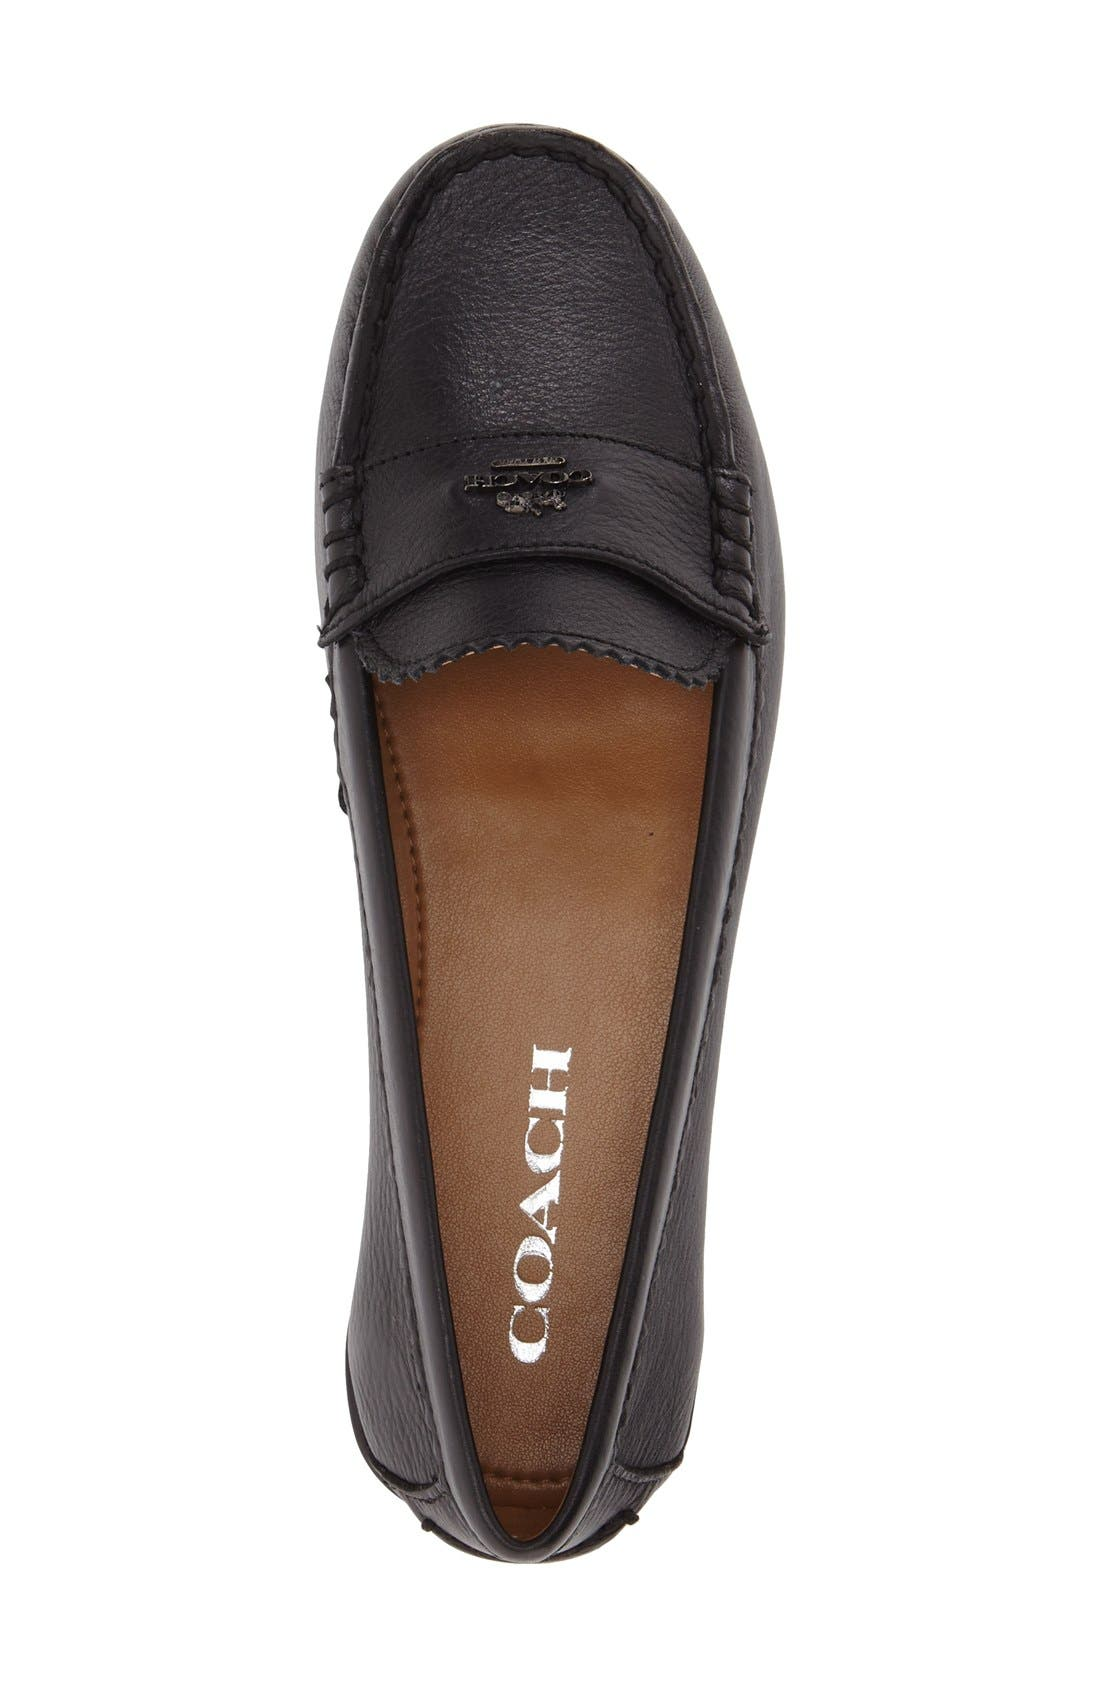 Alternate Image 3  - COACH 'Odette' Moccasin Loafer (Women)